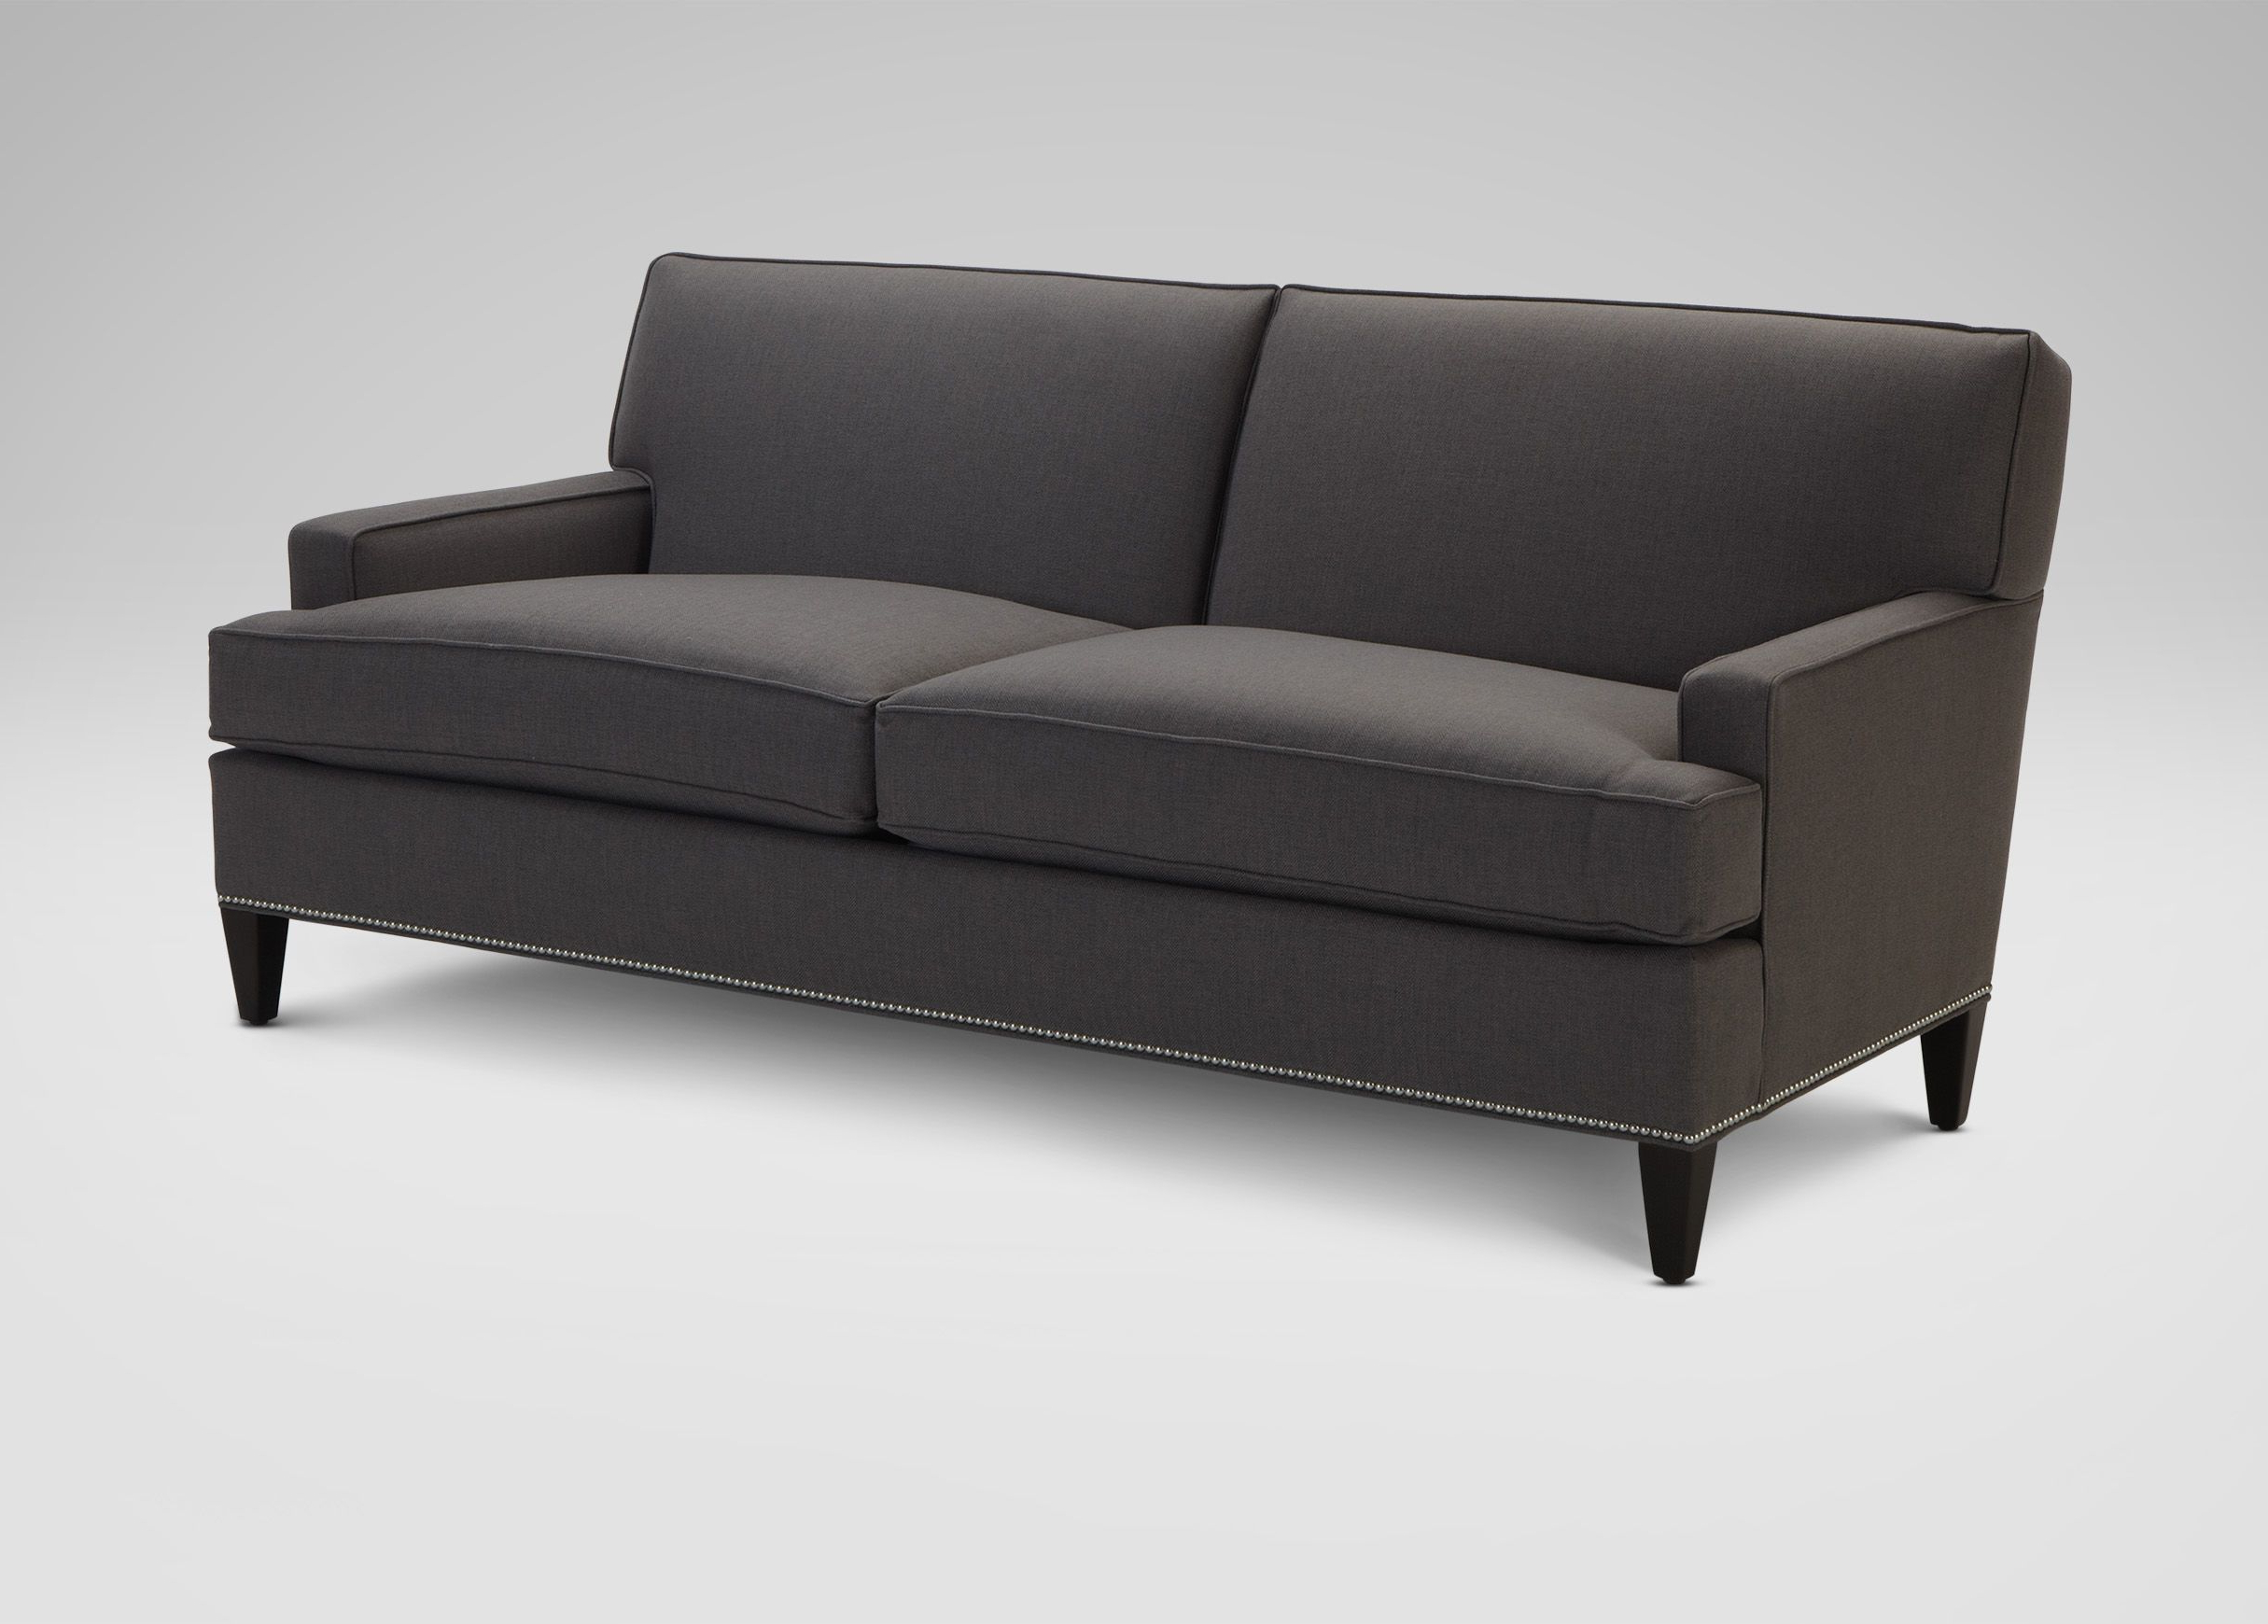 Bryant Sofa, Mack/pewter (View 9 of 20)